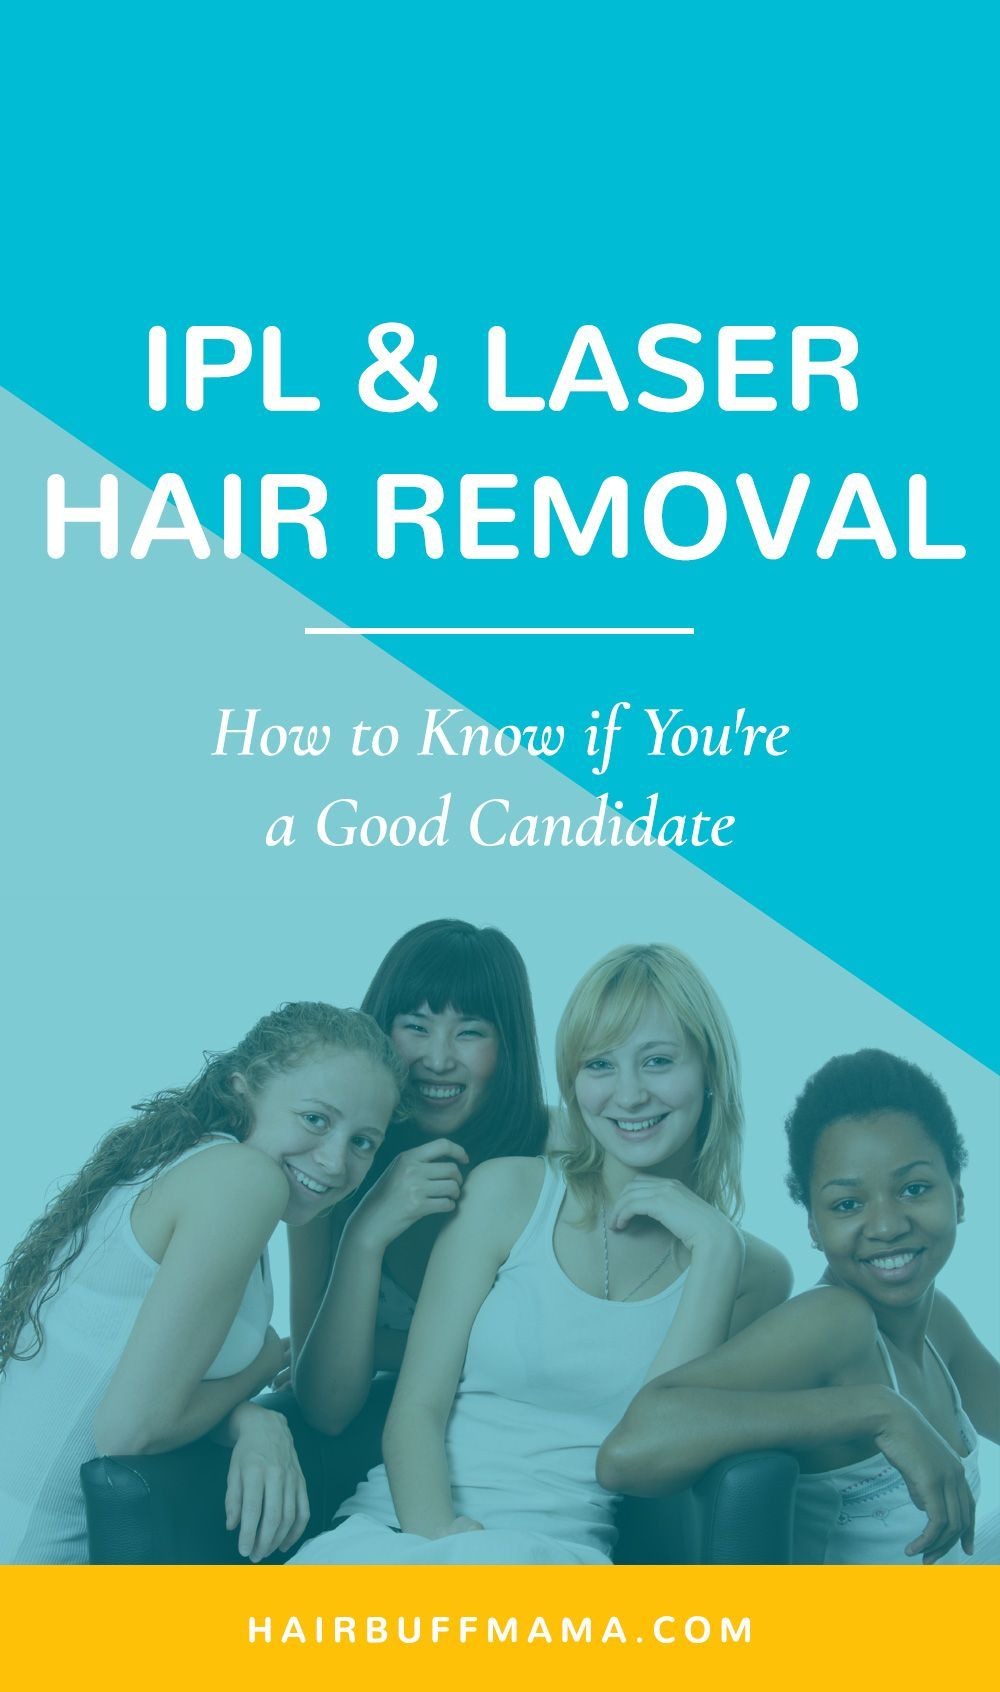 Ipl And Laser Hair Removal How To Know If You Re A Good Candidate Ipl Laser Hair Removal Laser Hair Removal Hair Removal Diy